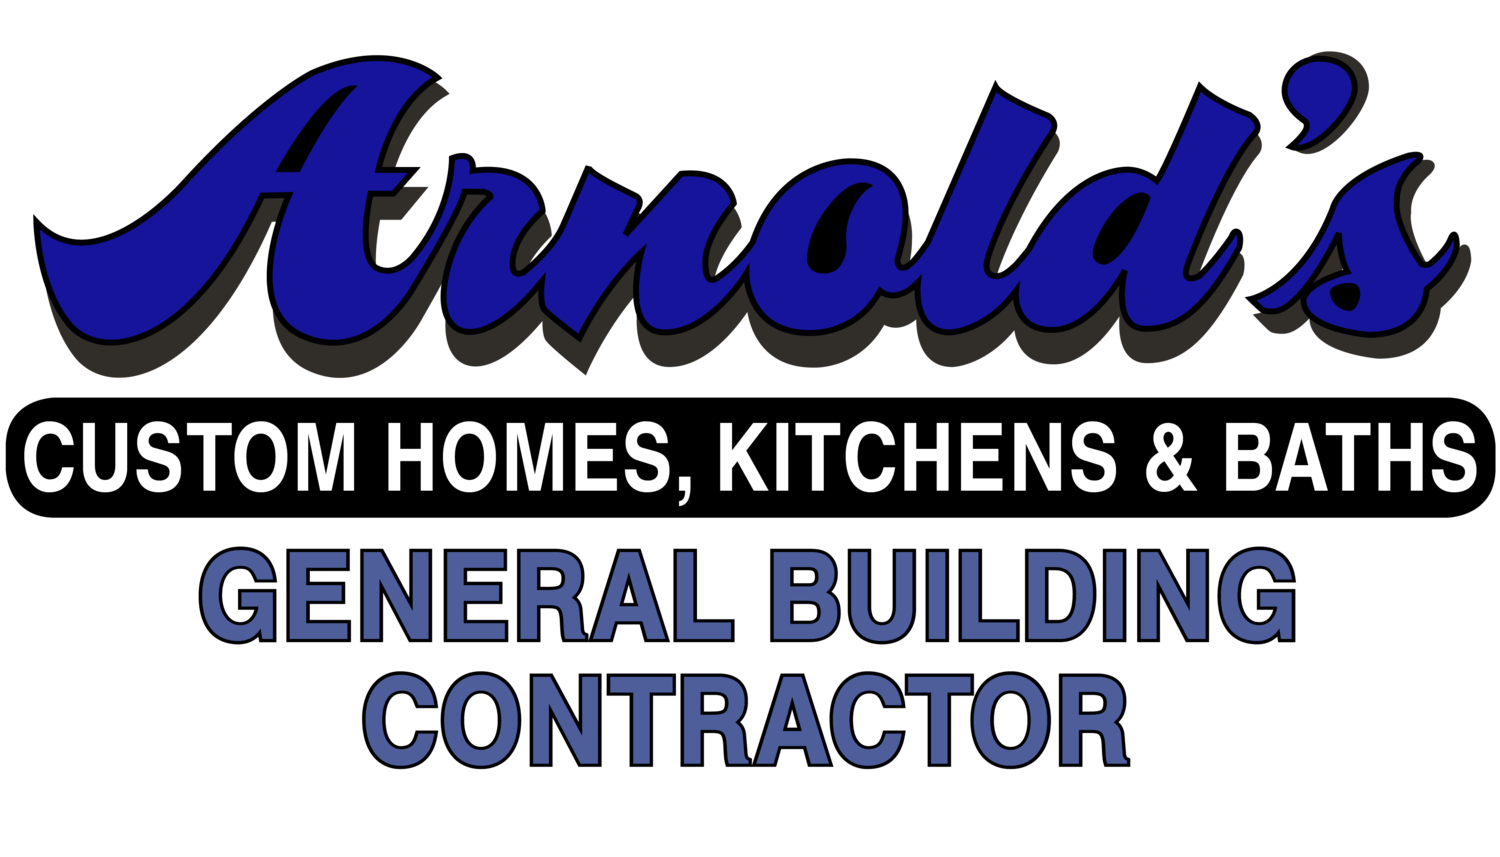 Arnold's Custom Homes, Kitchens & Baths General Contractor